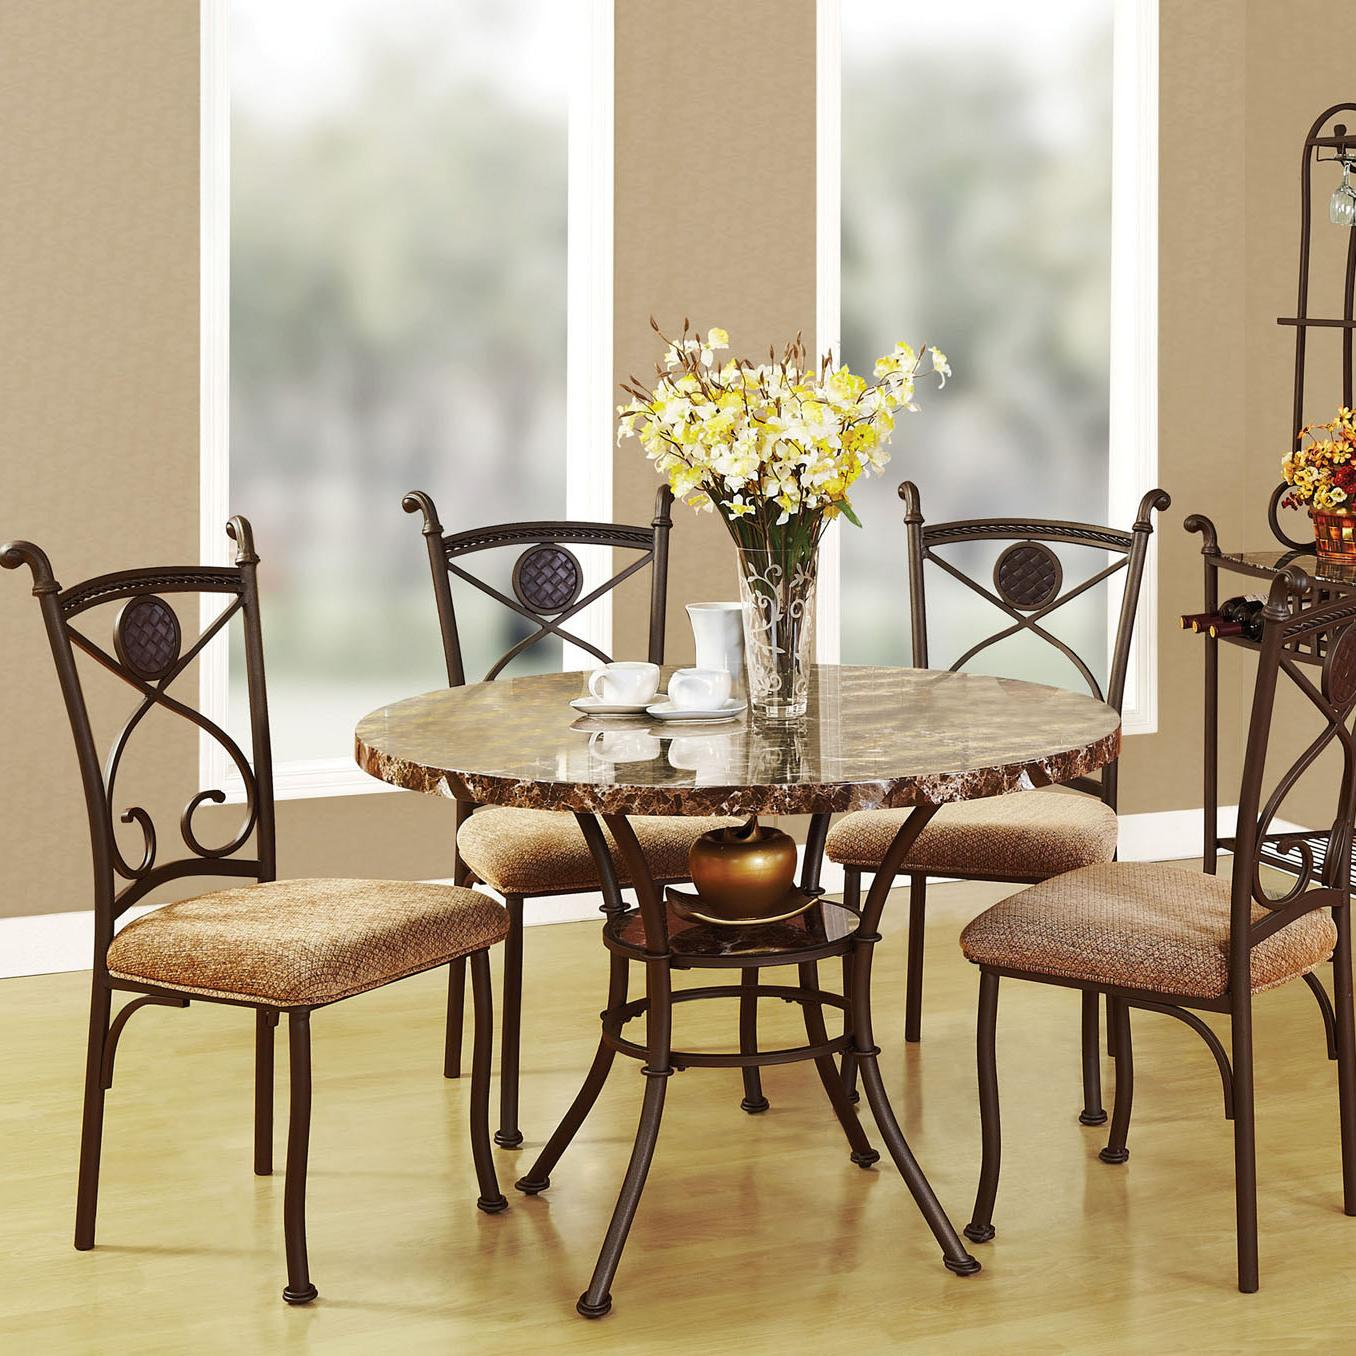 Acme Furniture Kleef 5 Piece Dining Table And Chair Set   Item Number: 70555